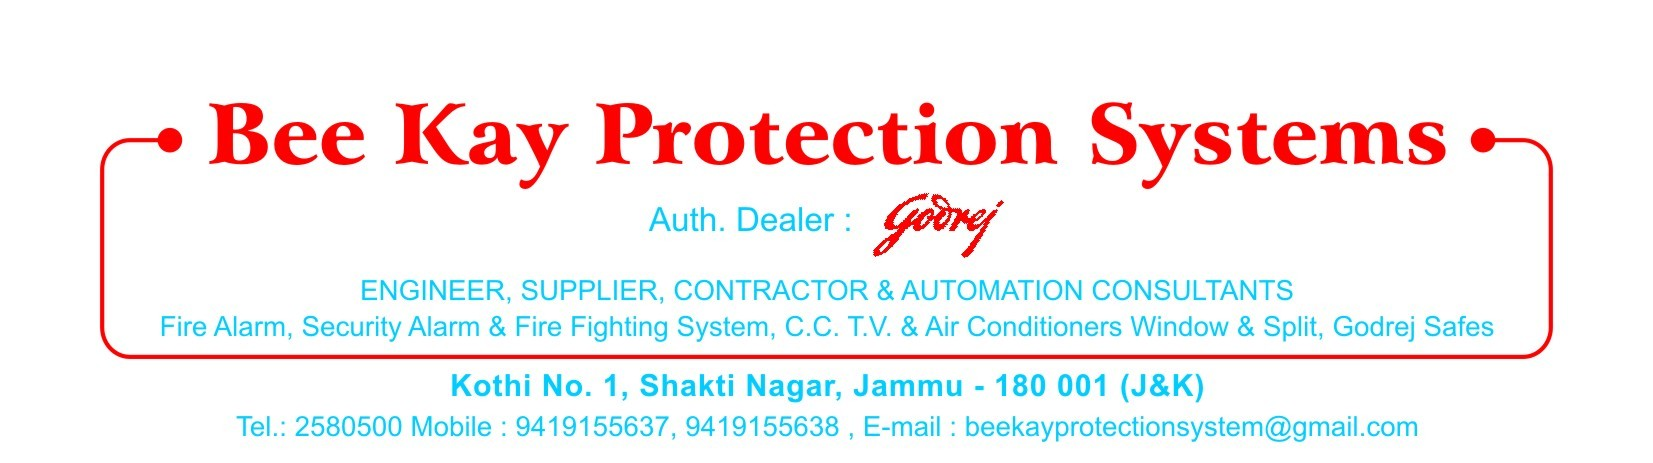 Bee Kay Protection Systems - logo